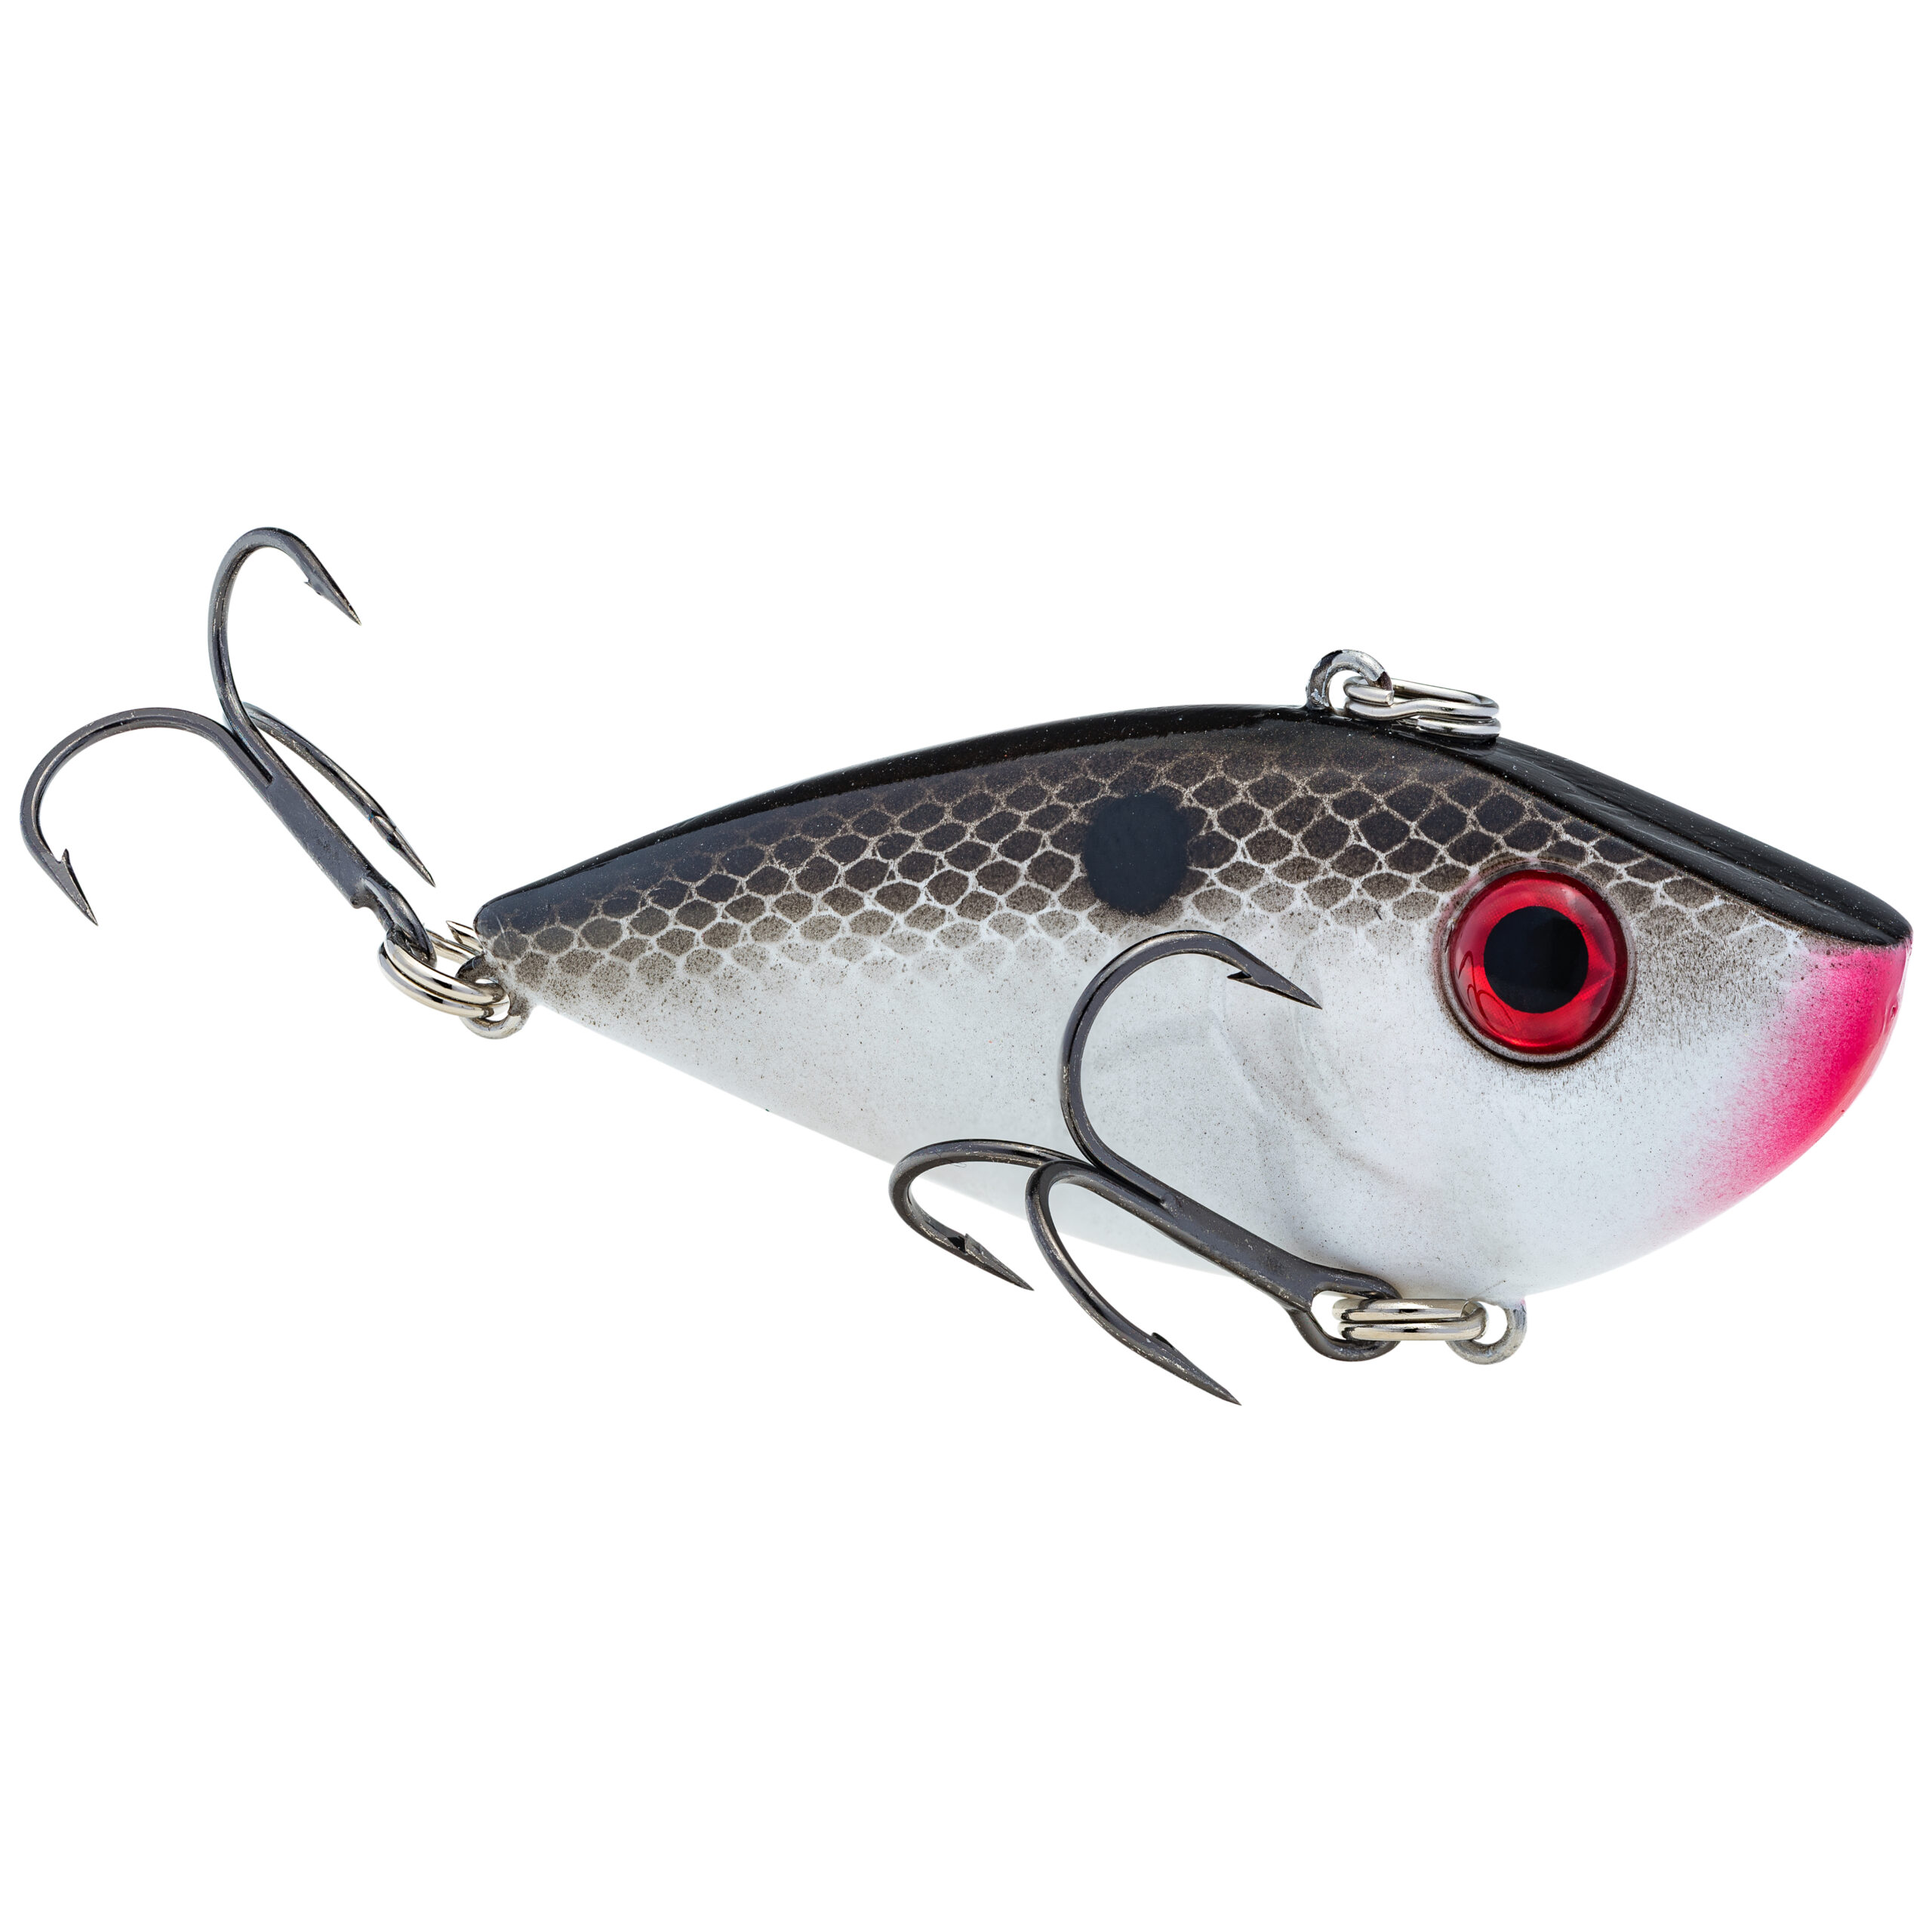 Strike King Lures – Crankbaits – Lipless Rattle Trap – Red Eyed Shad - 1/4oz - REYESD14-511 - Gizzard Shad